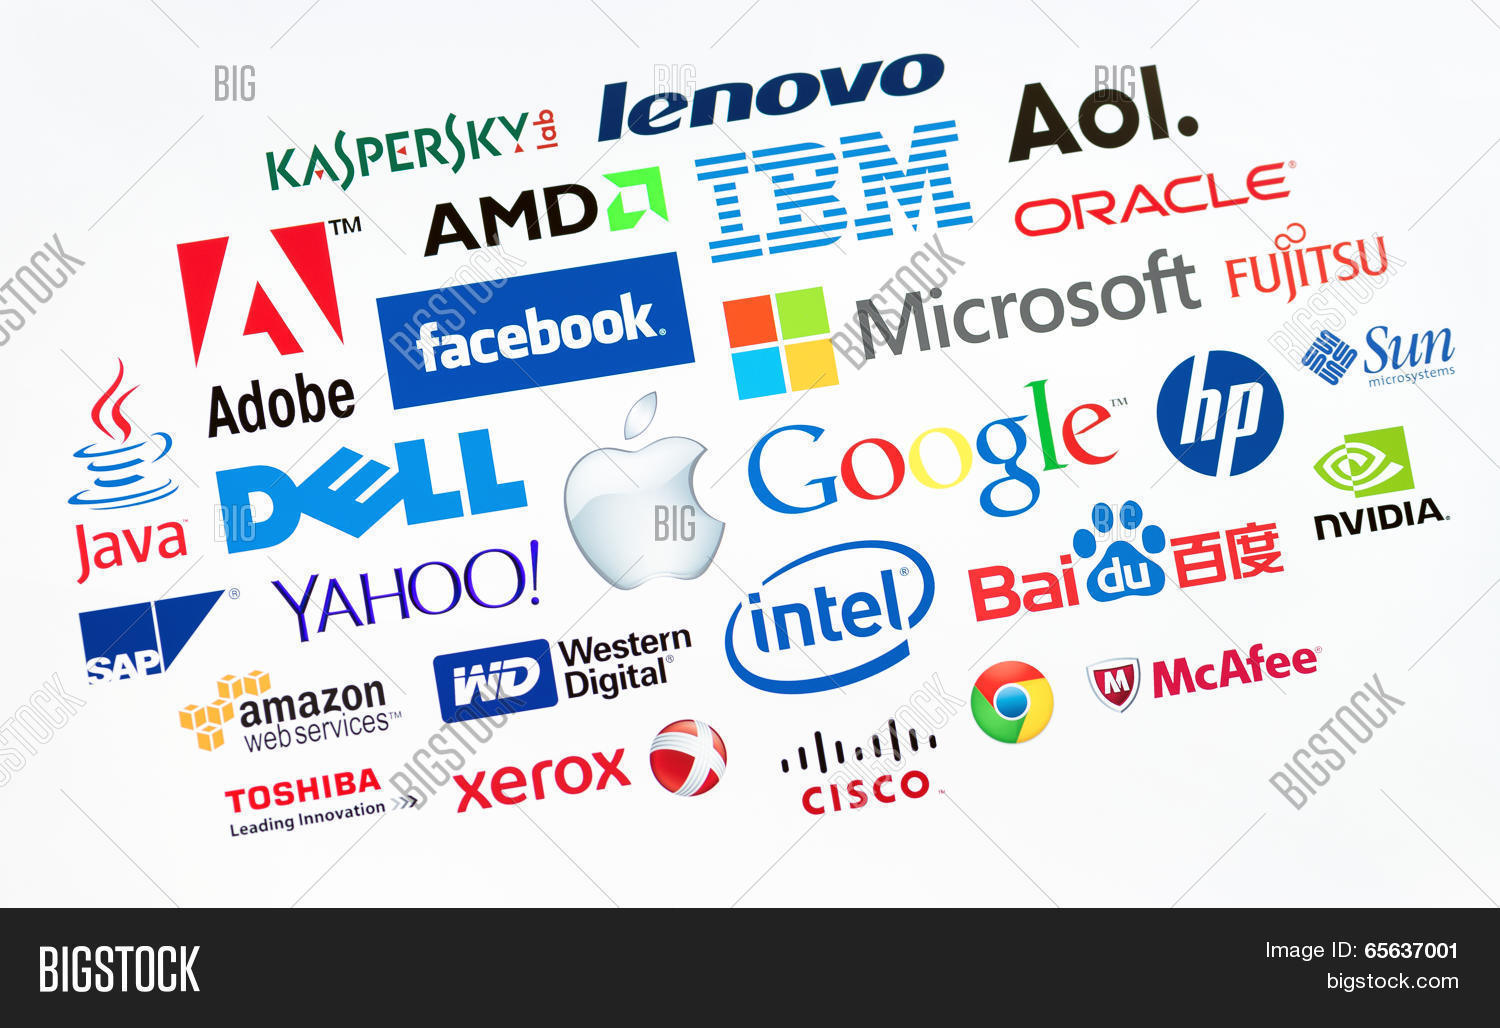 Top Computer Companies Image & Photo (Free Trial) | Bigstock